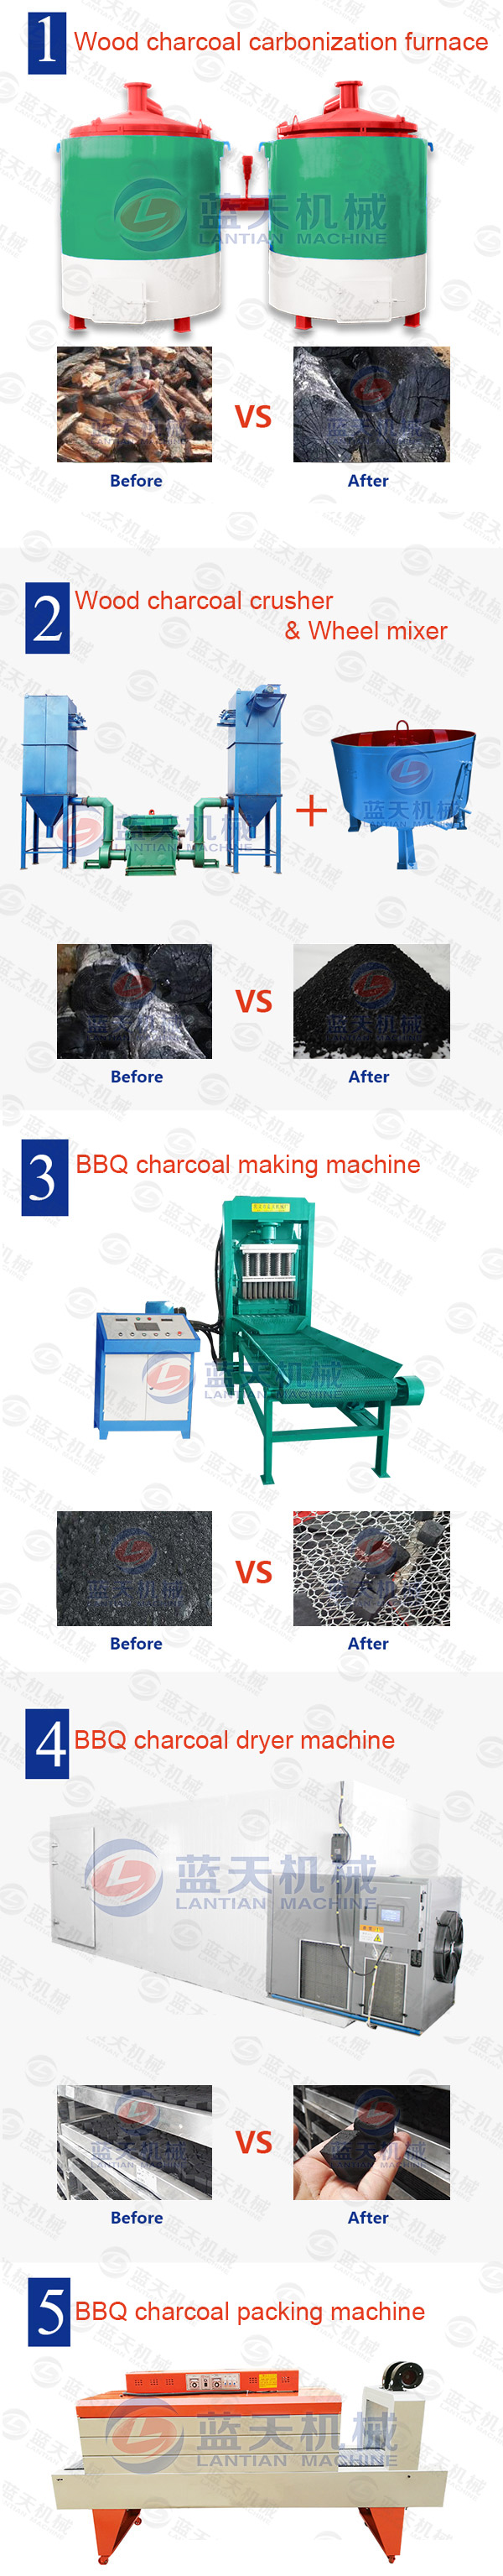 Product line of BBQ charcoal making machine